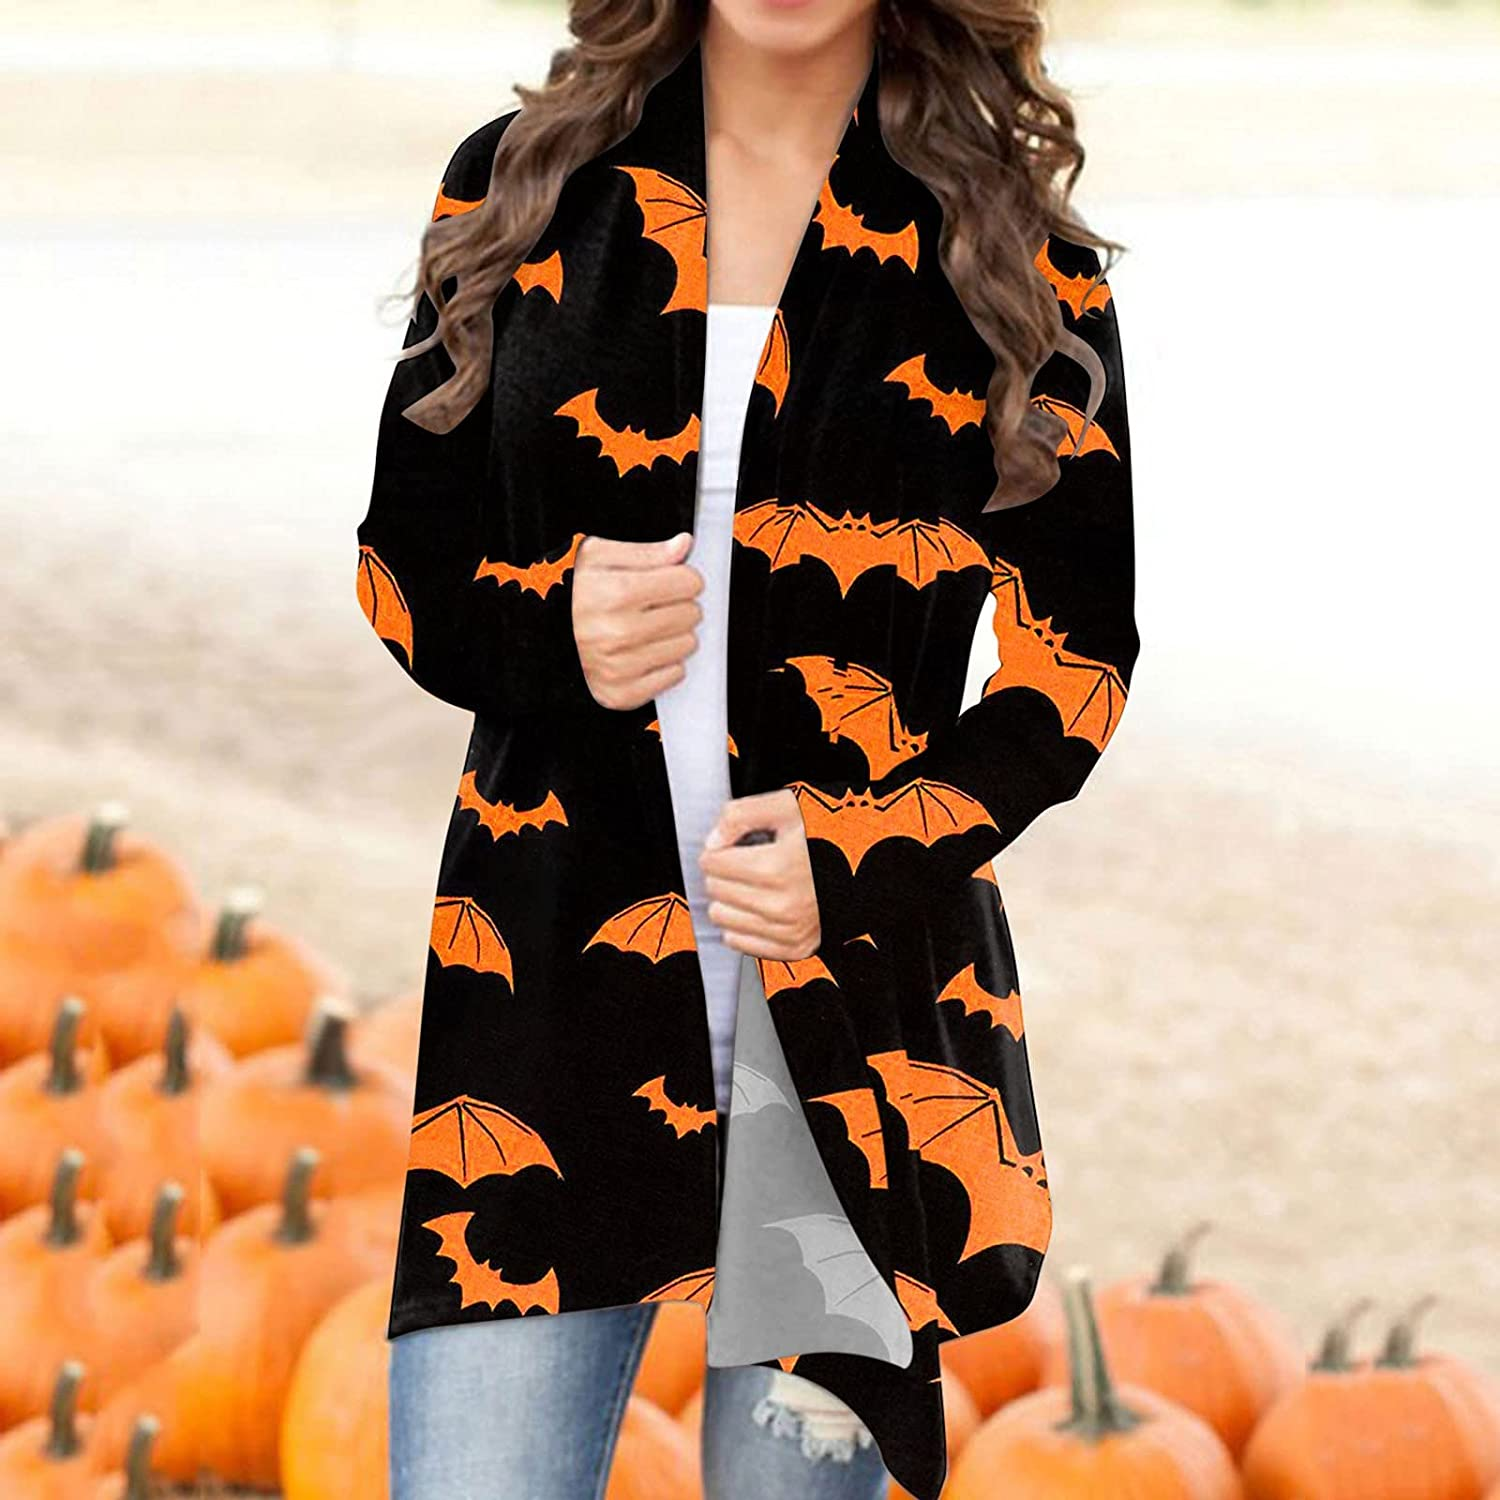 UOCUFY Halloween Cardigan for Women, Womens Funny Cute Pumpkin Cat Ghost Graphic Blouse Coat Long Sleeve Open Front Top